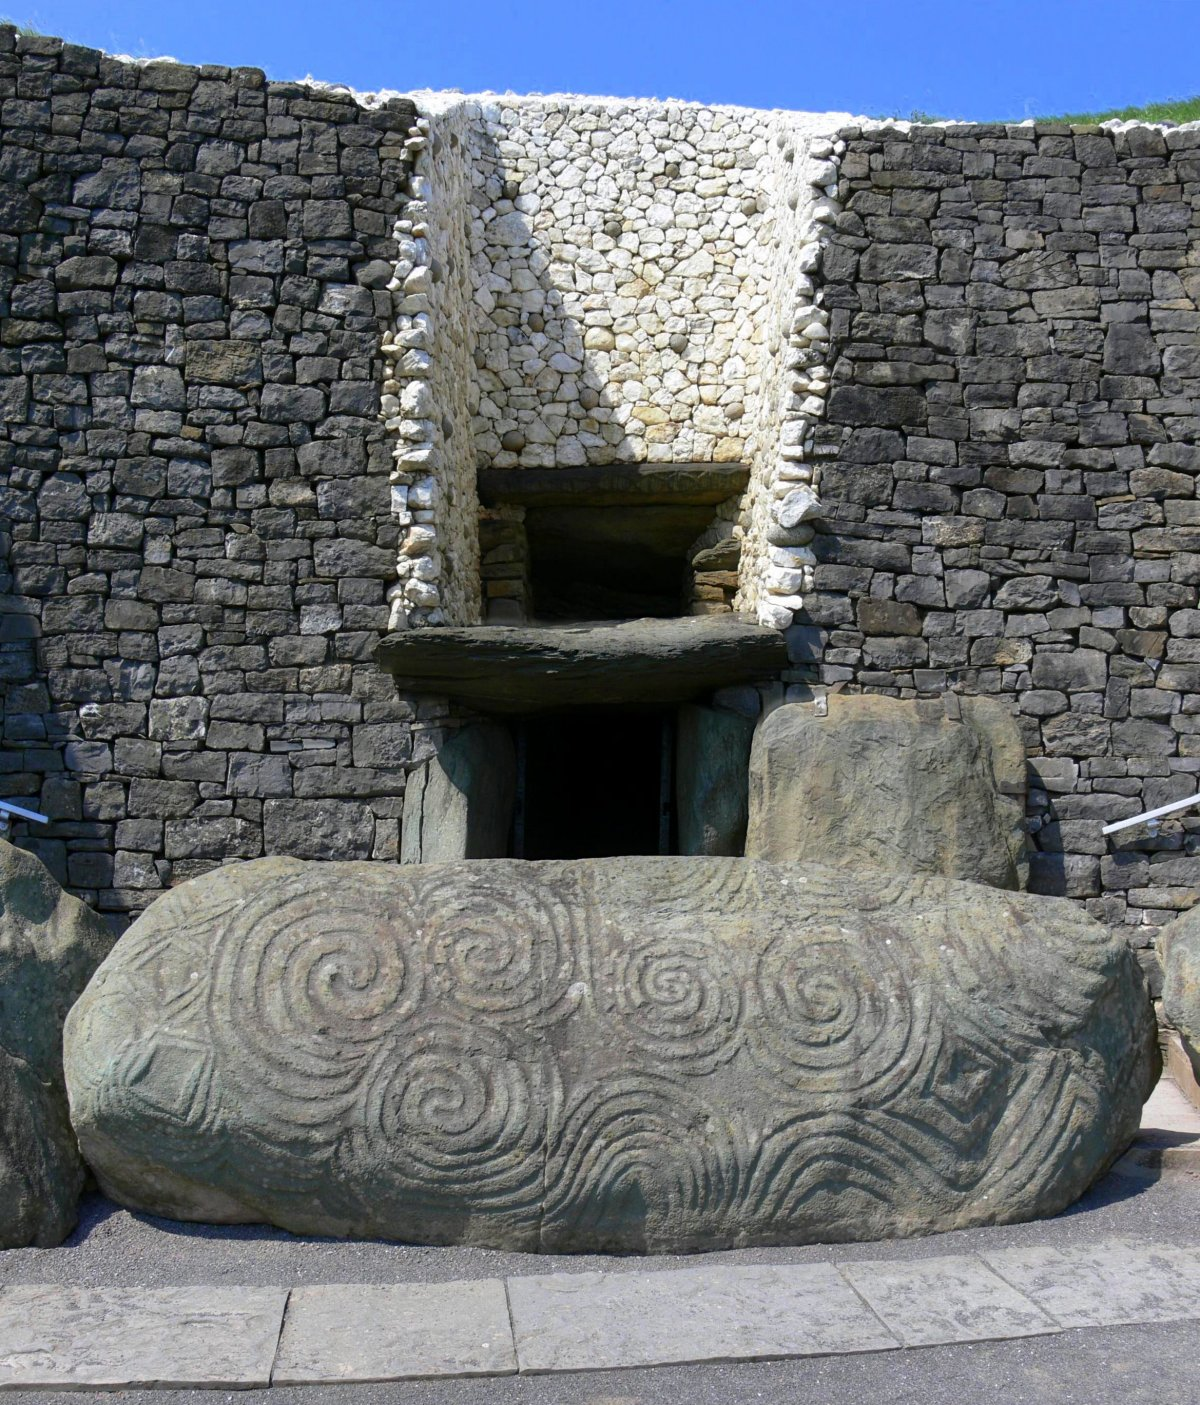 The entrance passage to Newgrange, and the entrance stone